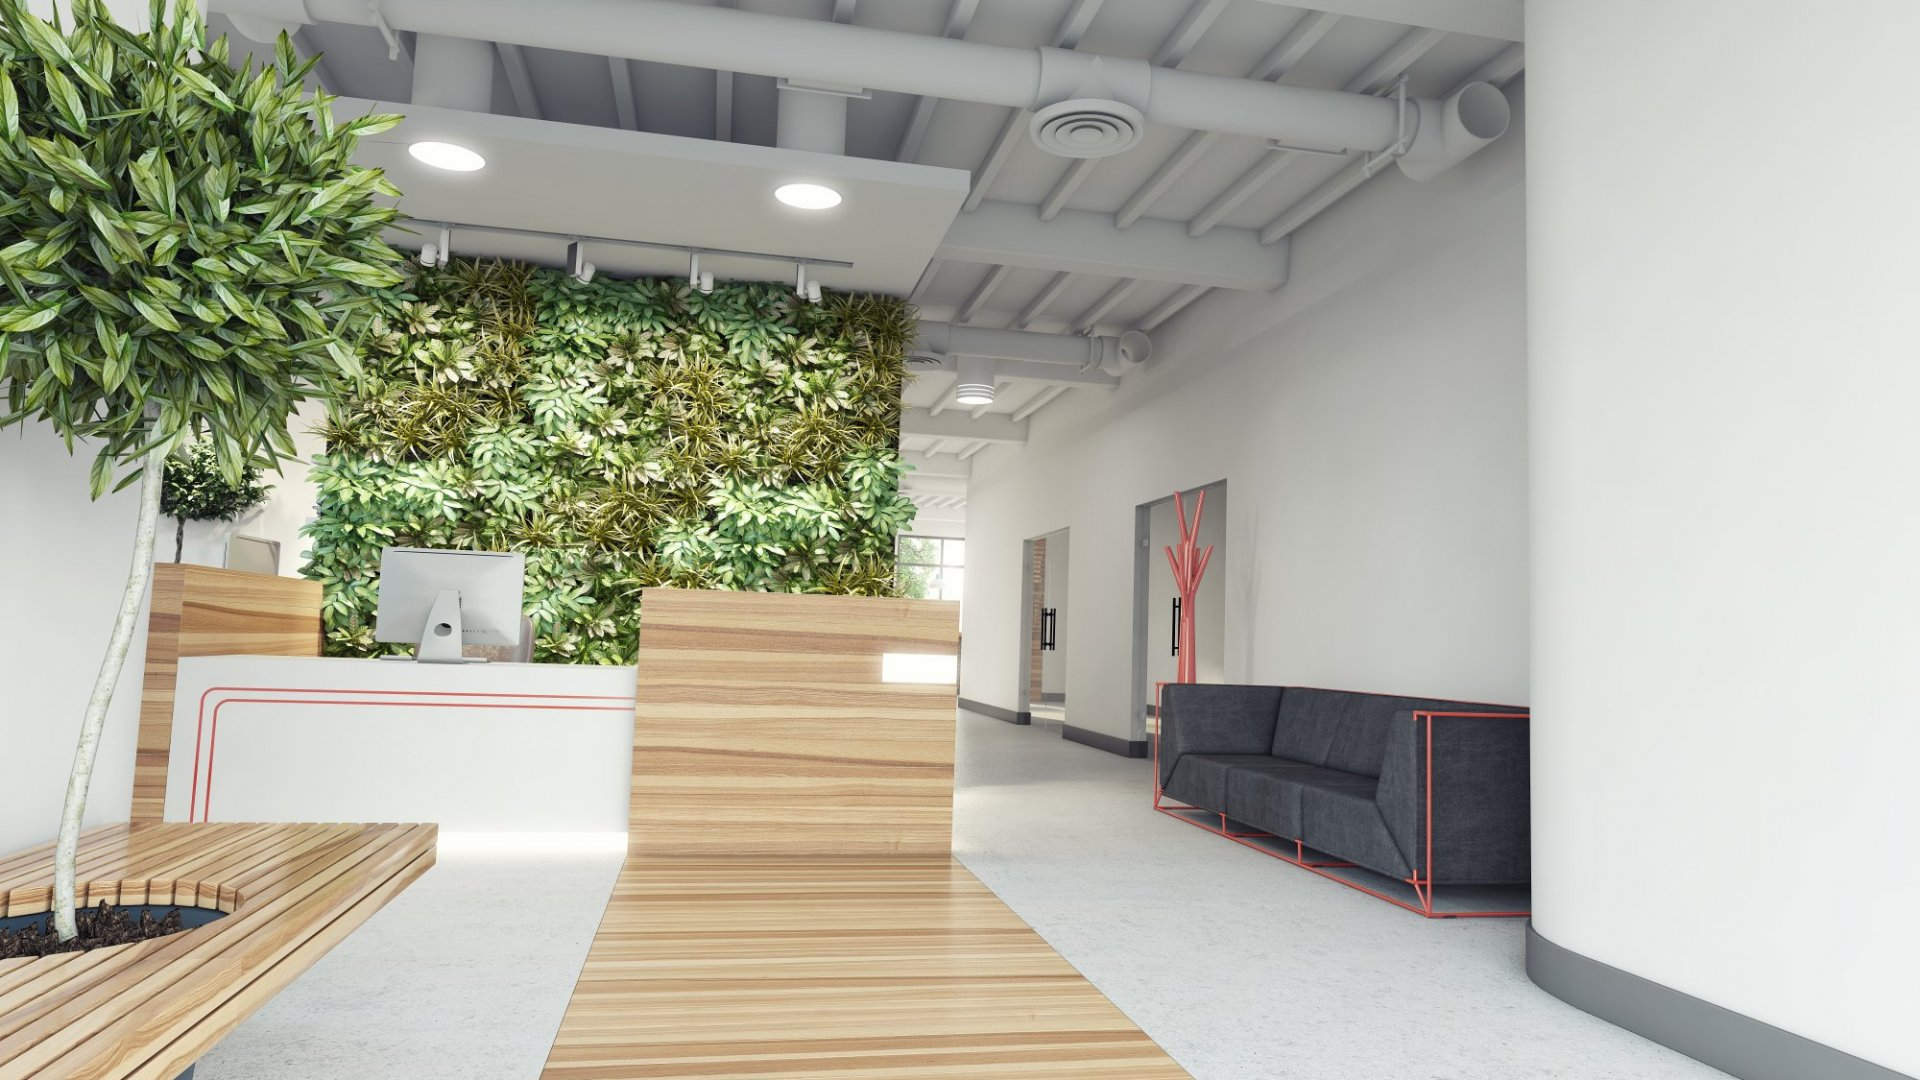 How to Bring the Outdoors Into the Workplace